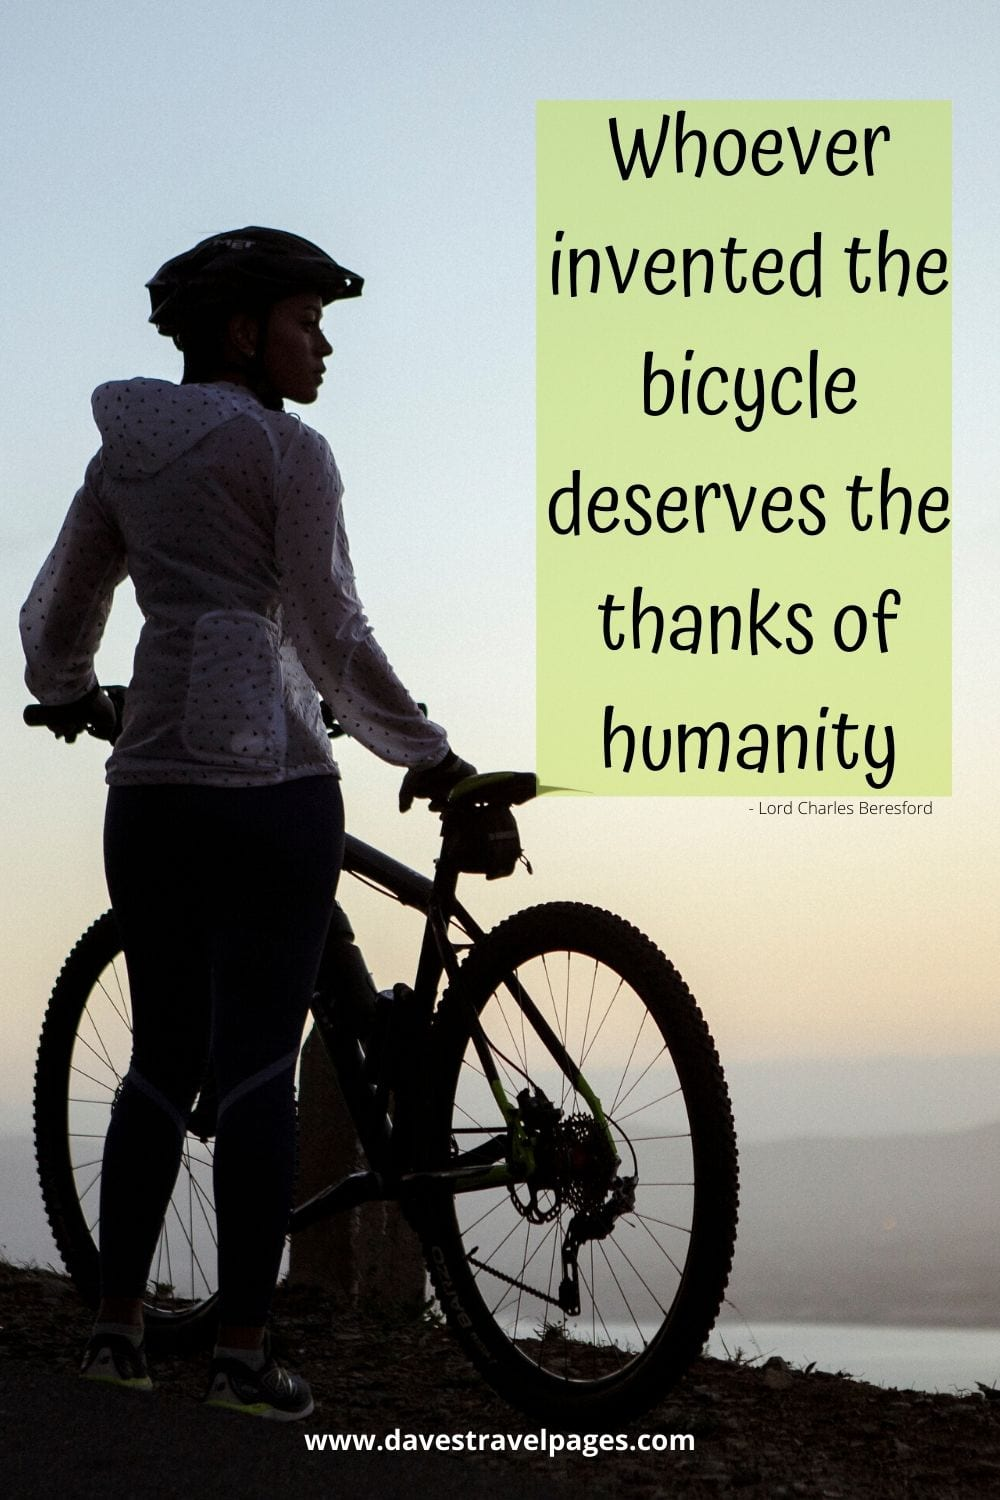 Quotes about Inventions - Whoever invented the bicycle deserves the thanks of humanity. ~ Lord Charles Beresford